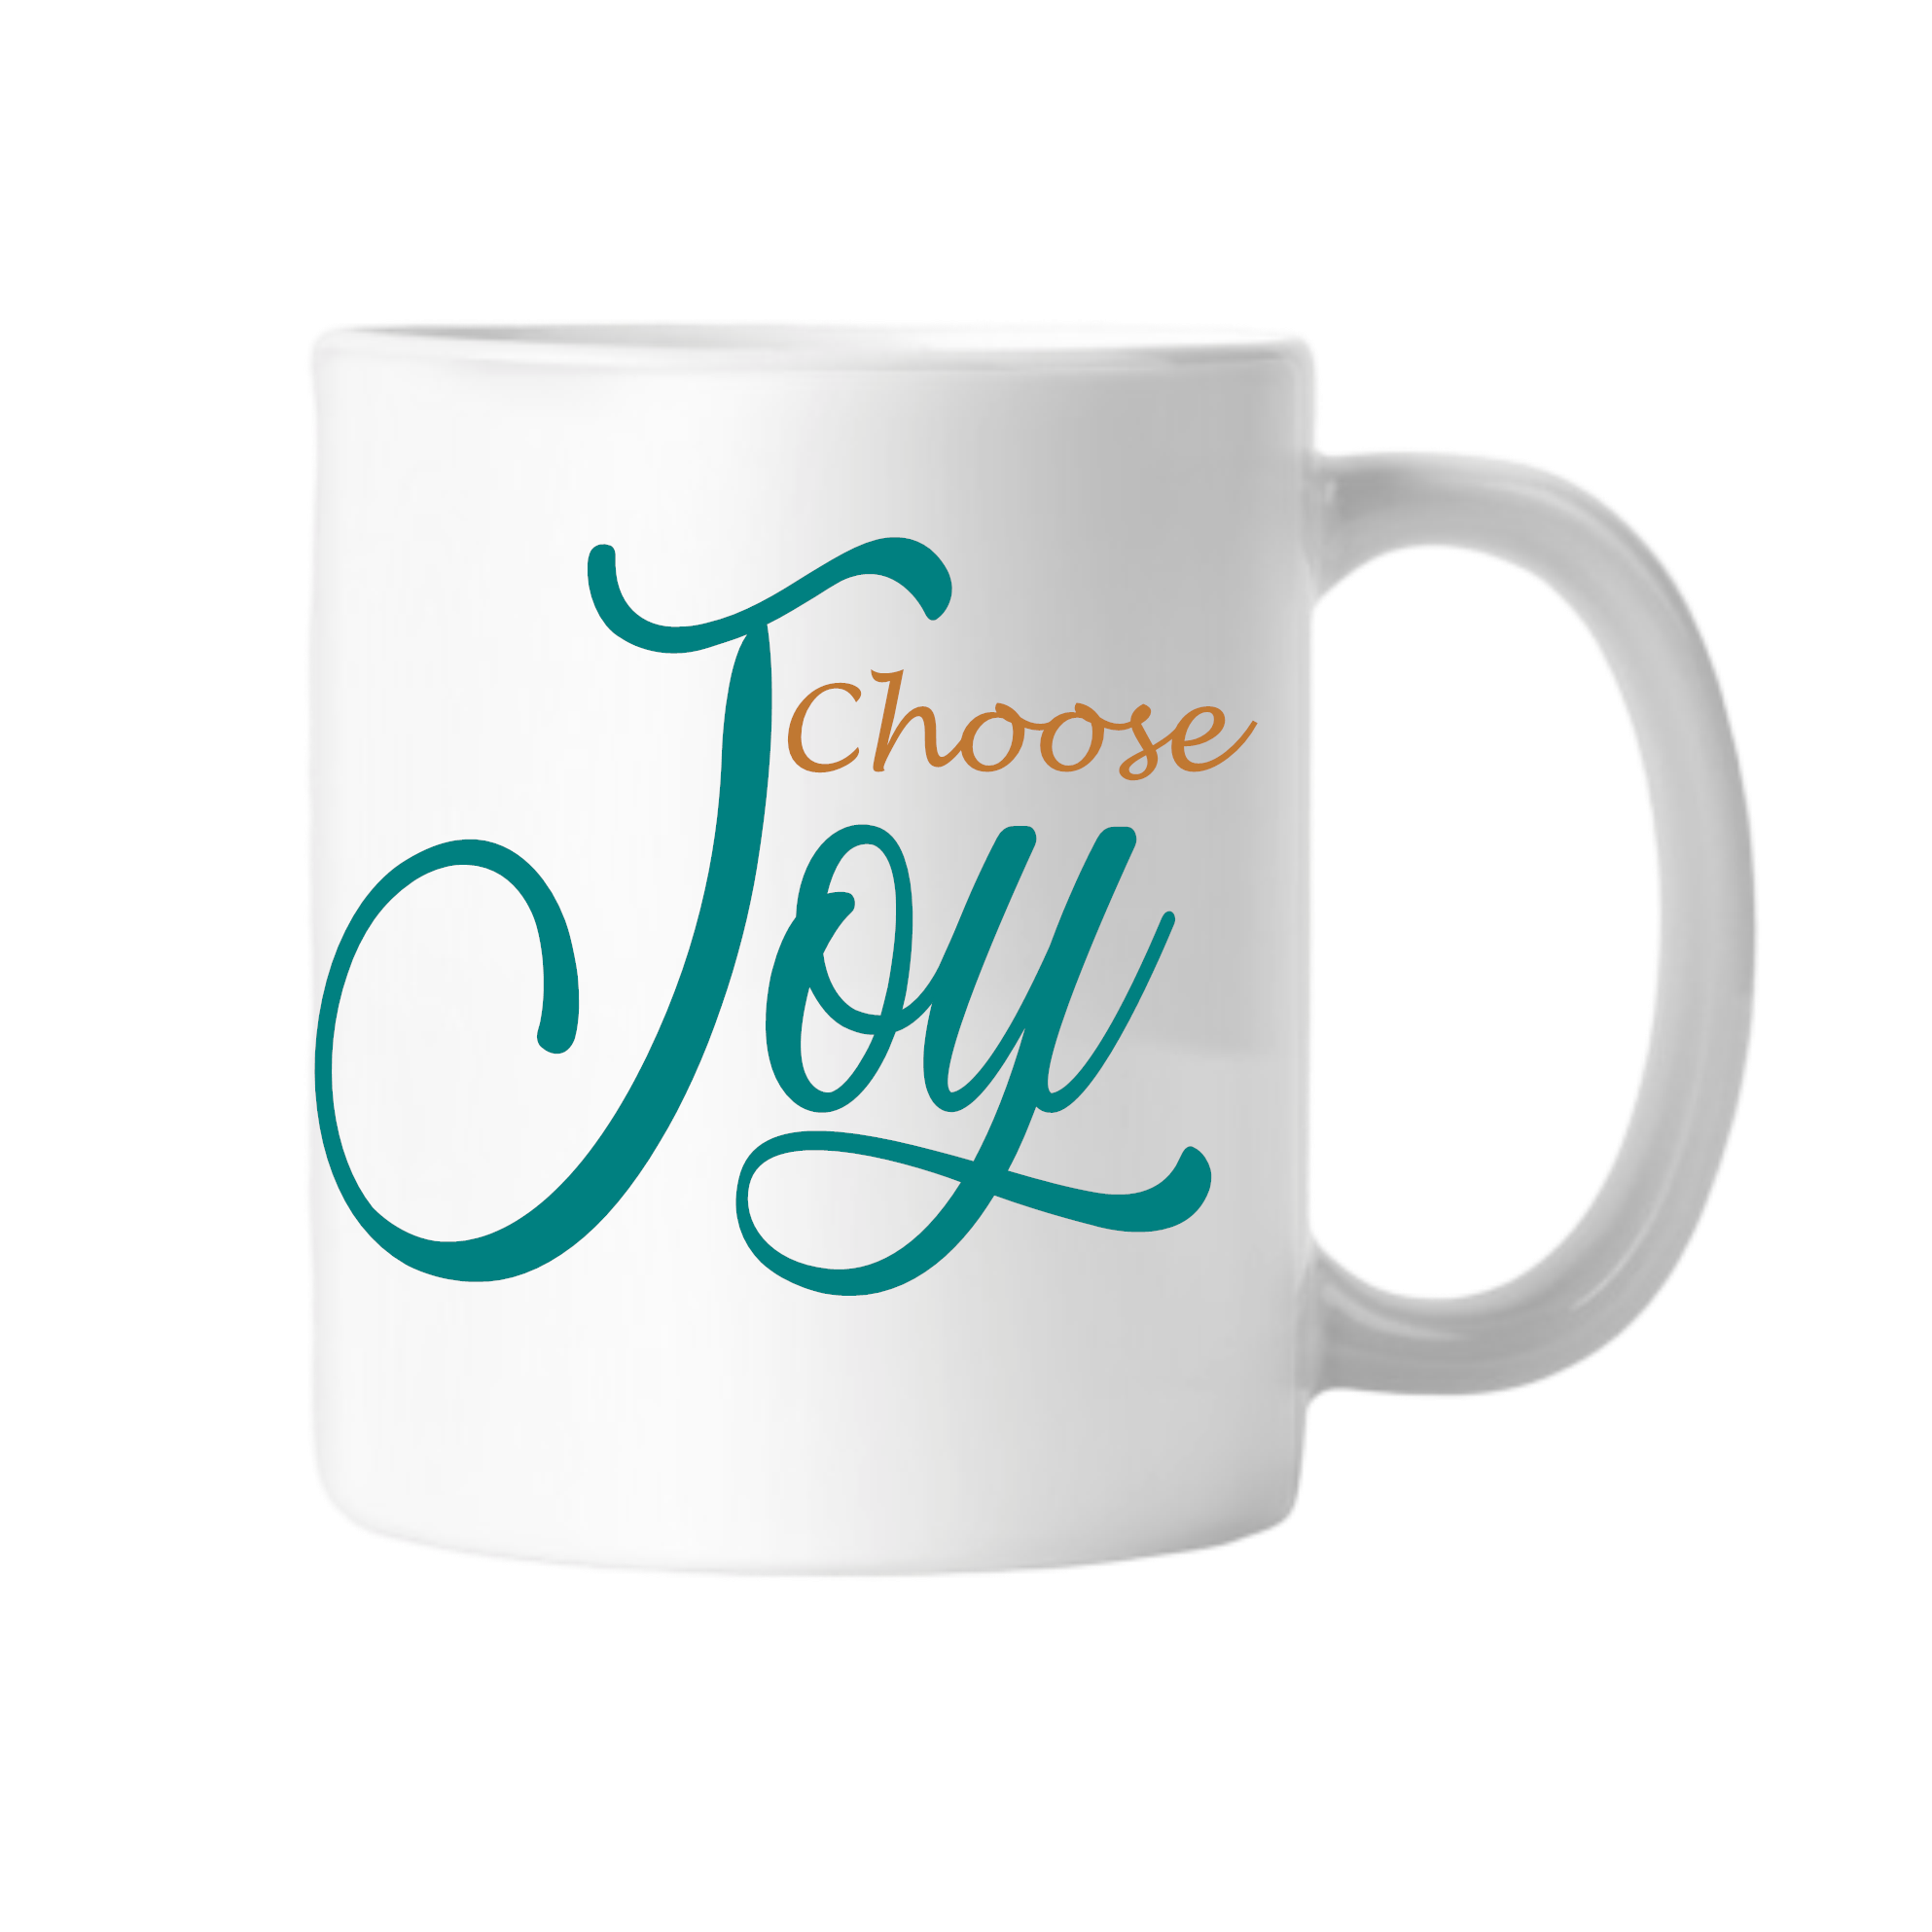 Choose Joy - Tee Size Me